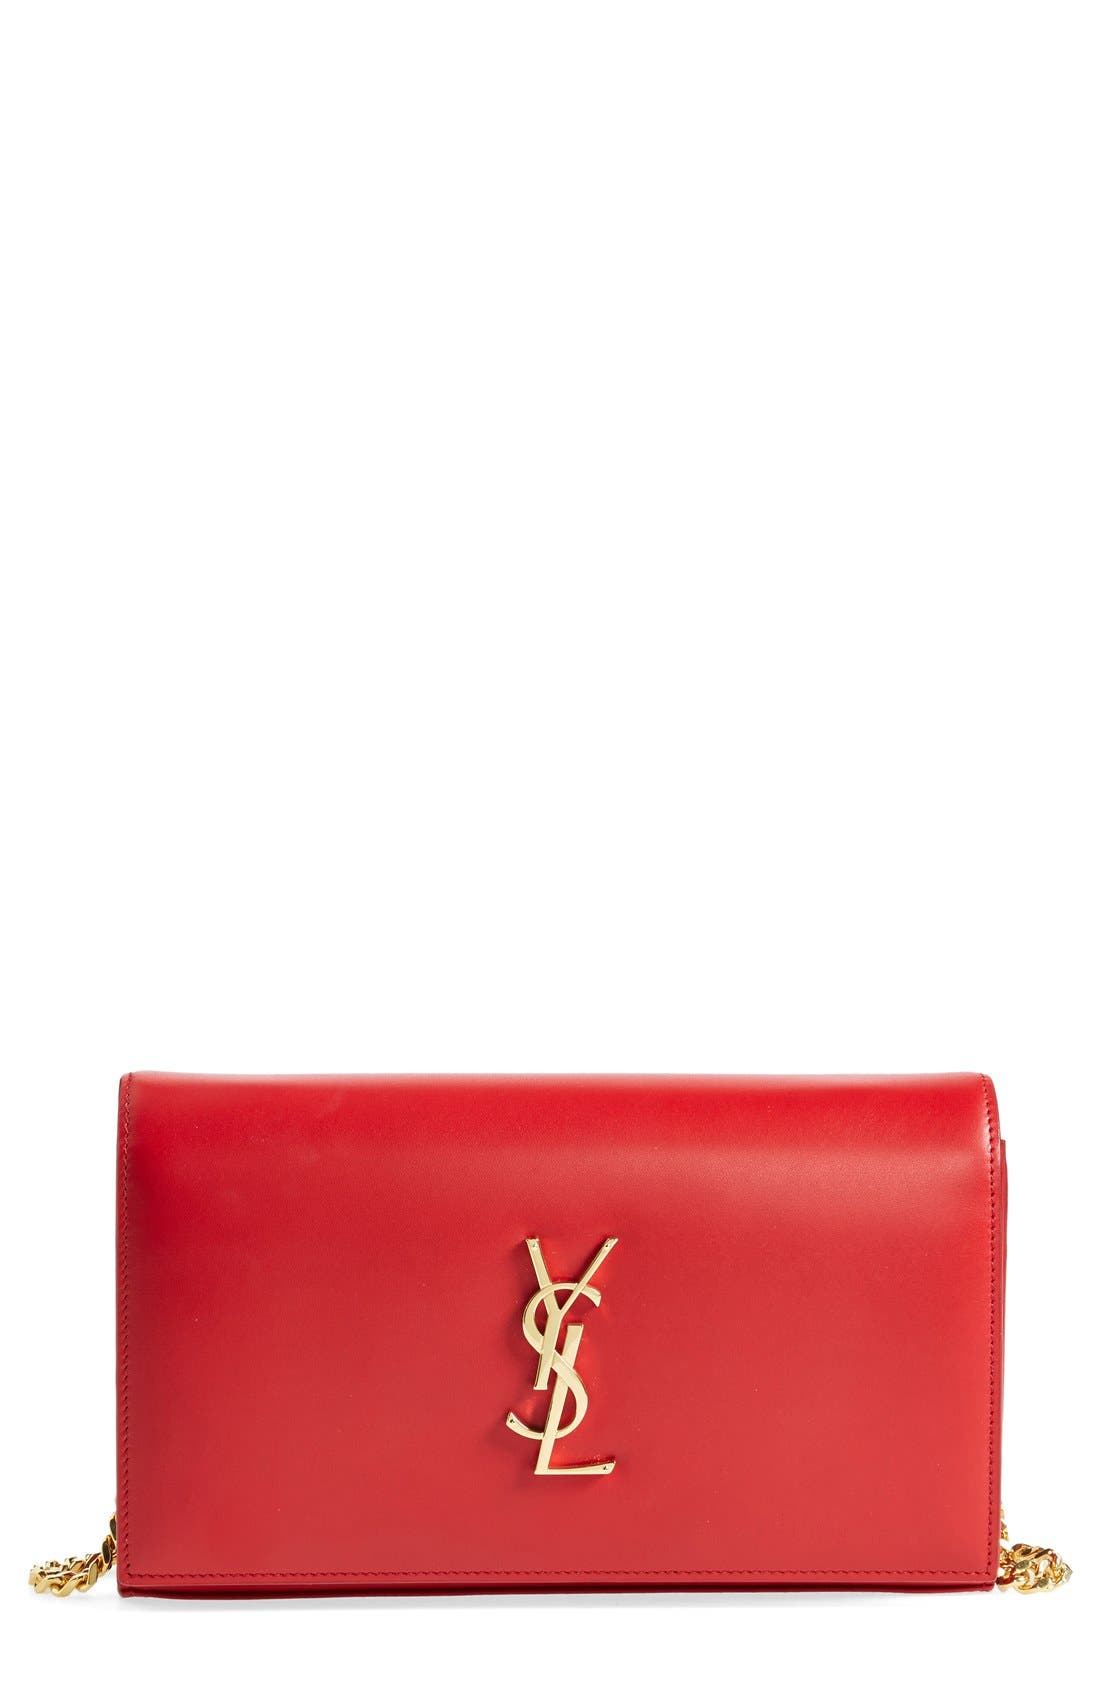 Alternate Image 1 Selected - Saint Laurent 'Monogram' Leather Wallet on a Chain